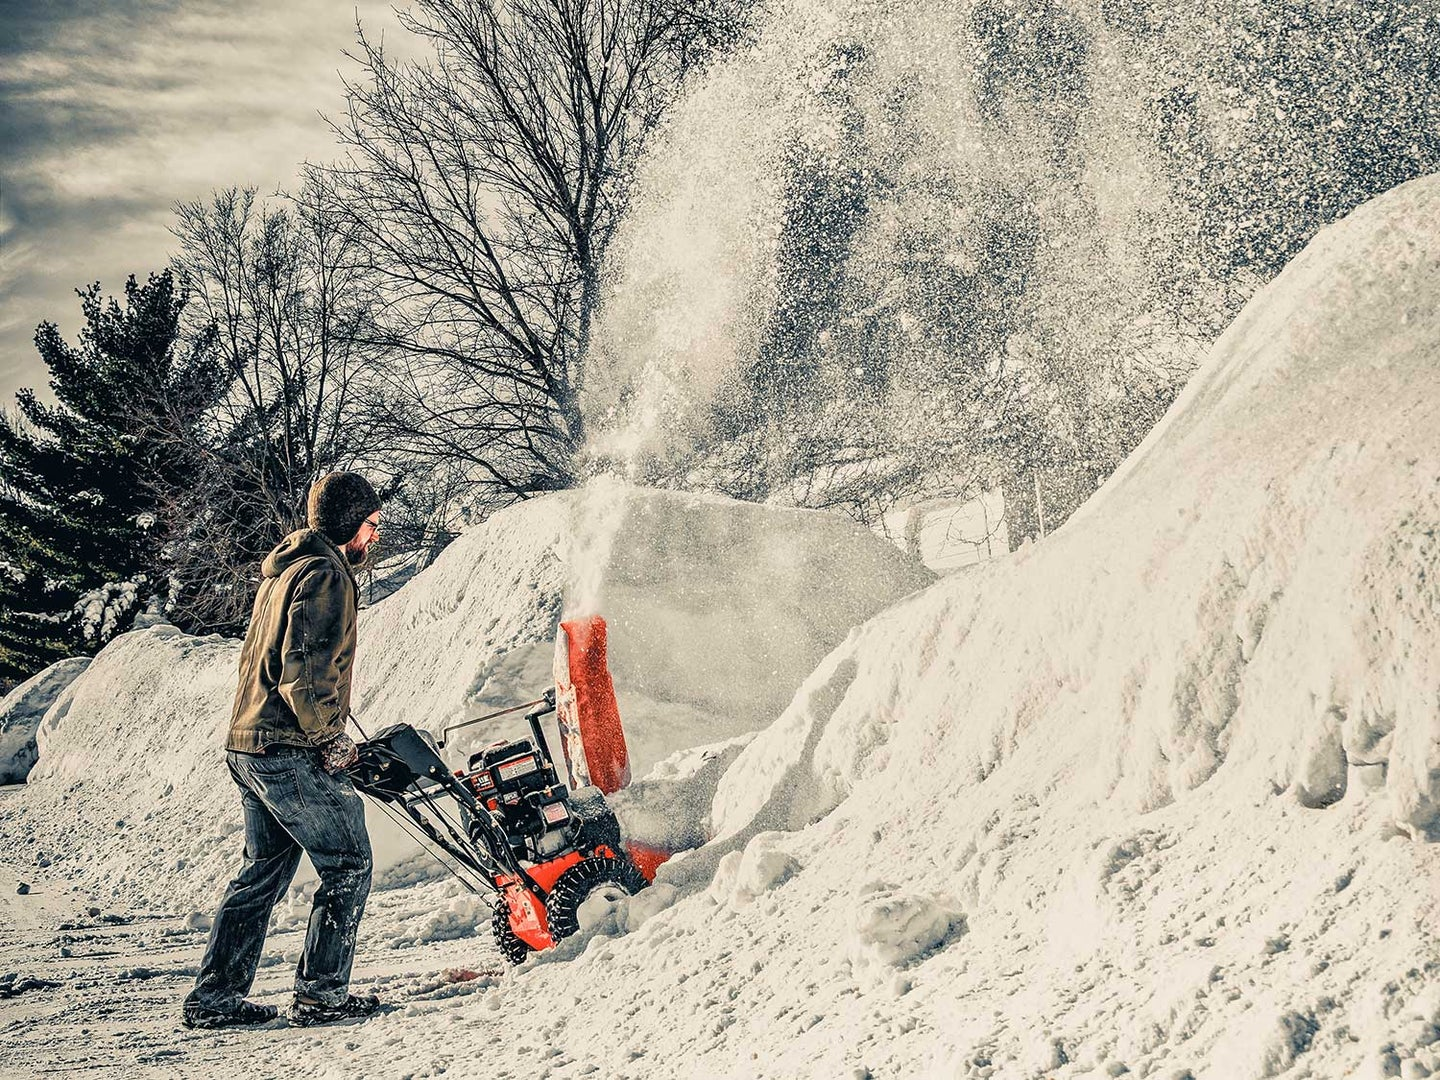 Man using snow plow keeping hands warm with heated gloves.